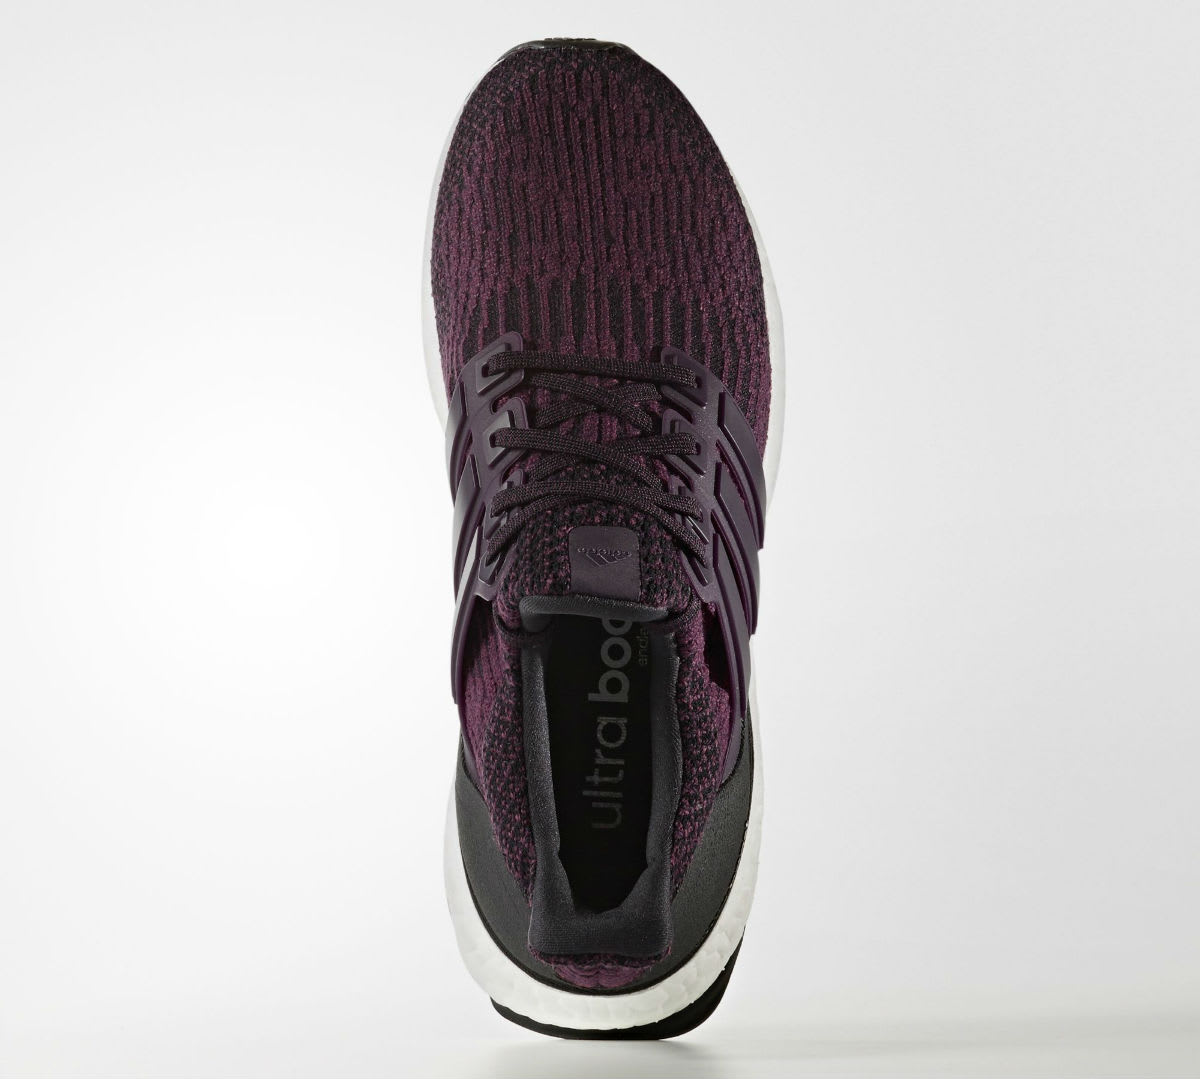 35ad51bc5f44 ... cheapest adidas womens ultra boost 3.0 red night release date top  s82058 b2780 8f62c